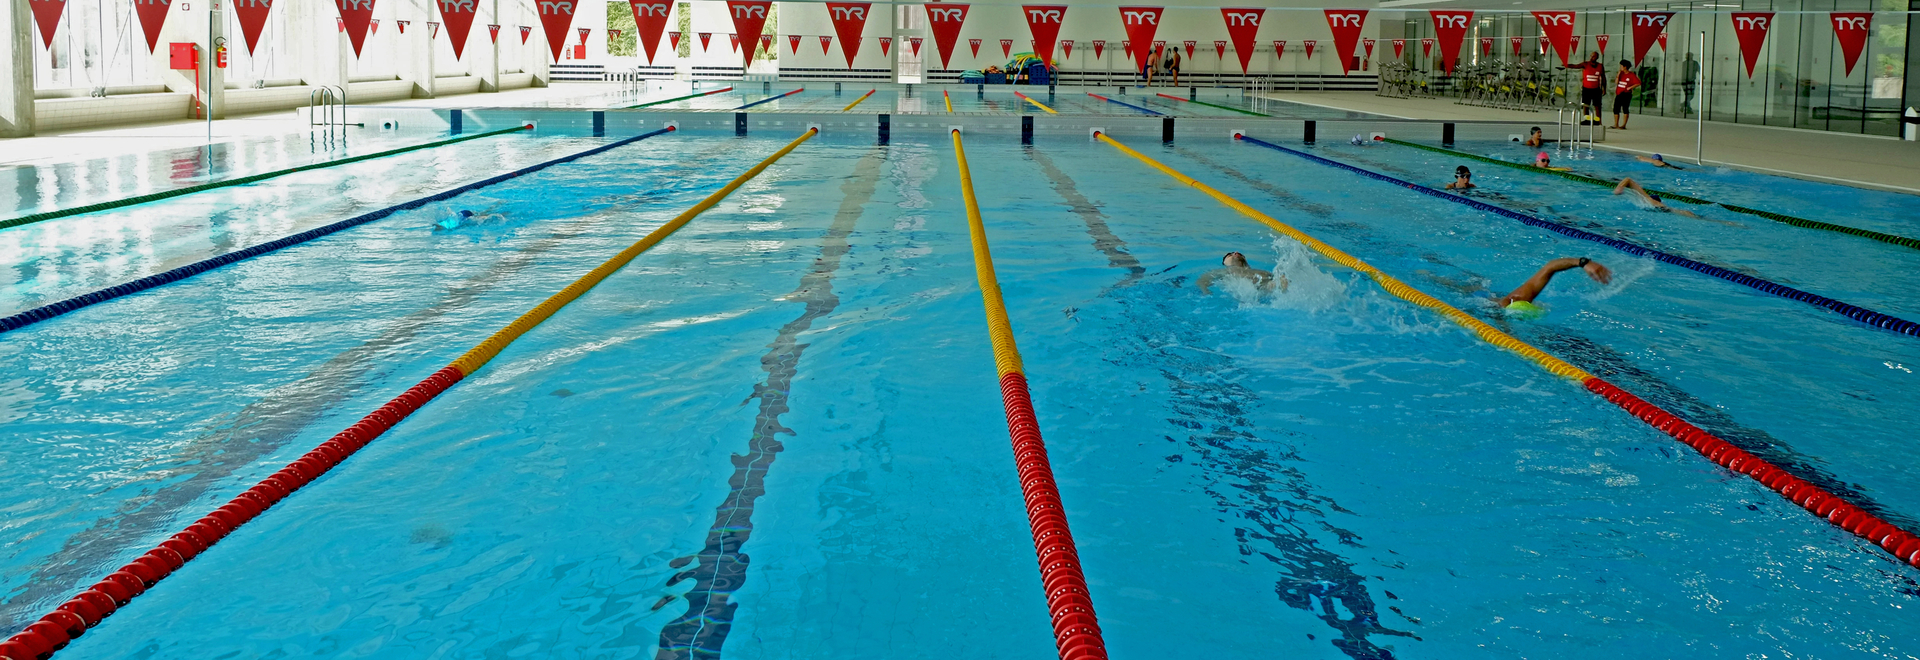 Cuneo swimming stadium: a contemporary decorative format in porcelain stoneware